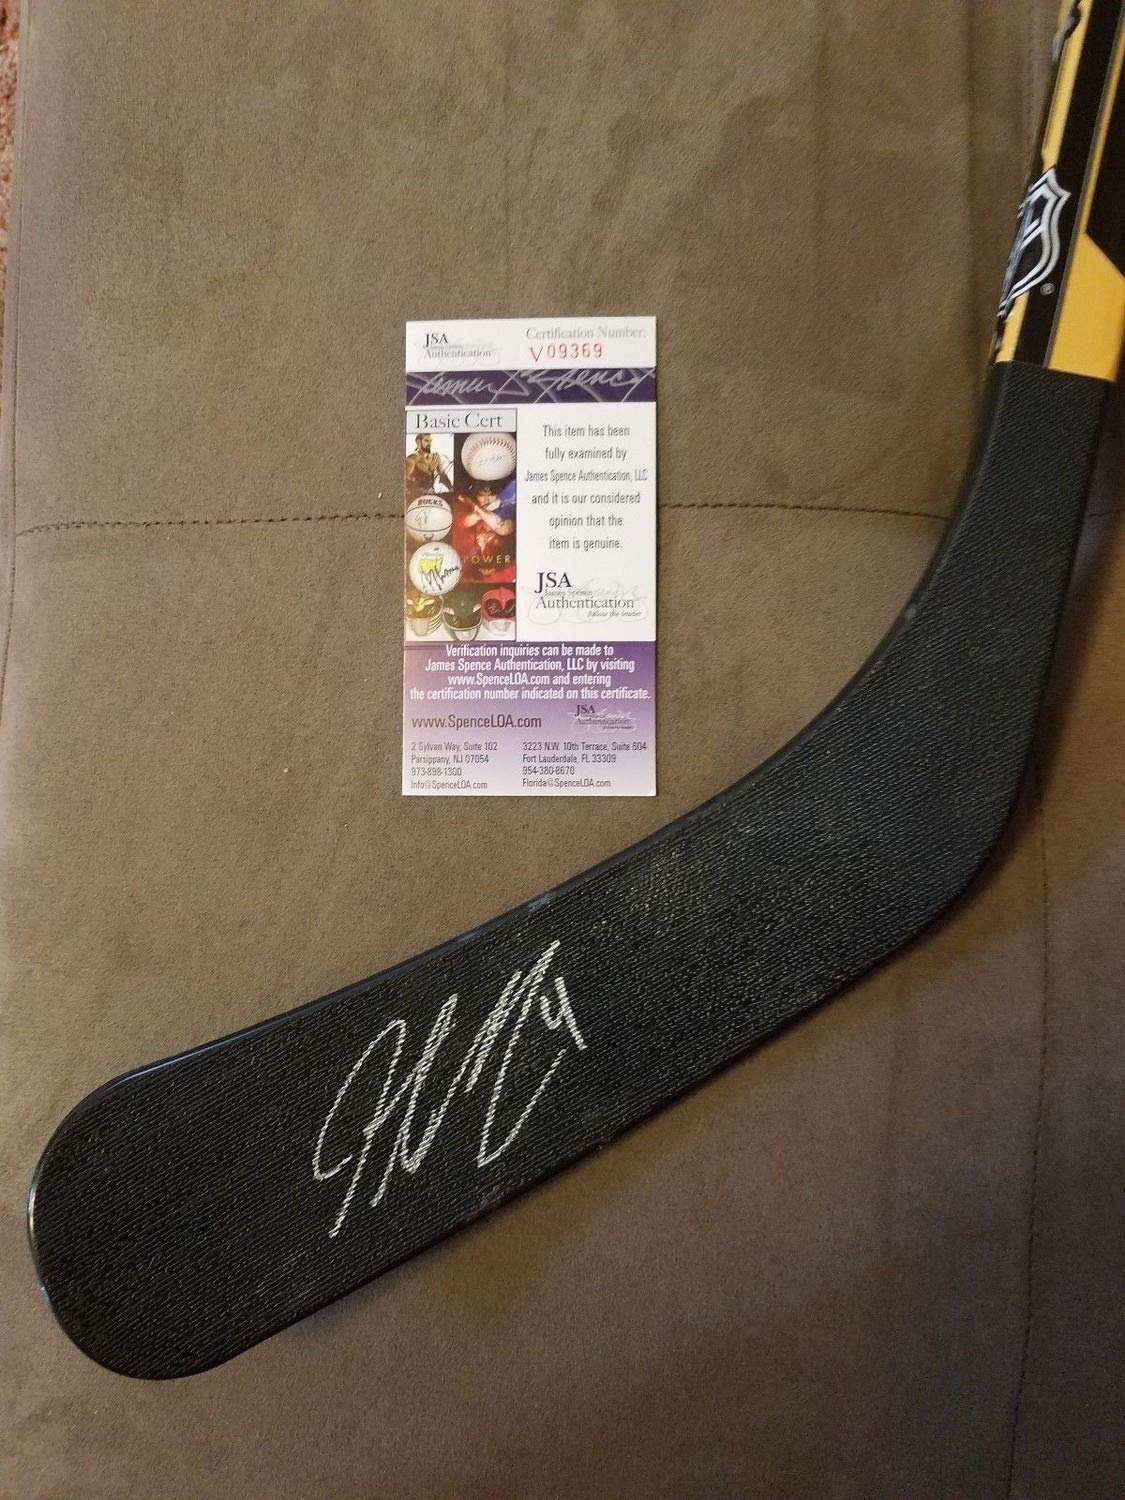 Justin Schultz Autographed Signed Pittsburgh Penguins Stick JSA Authentic Memorabilia